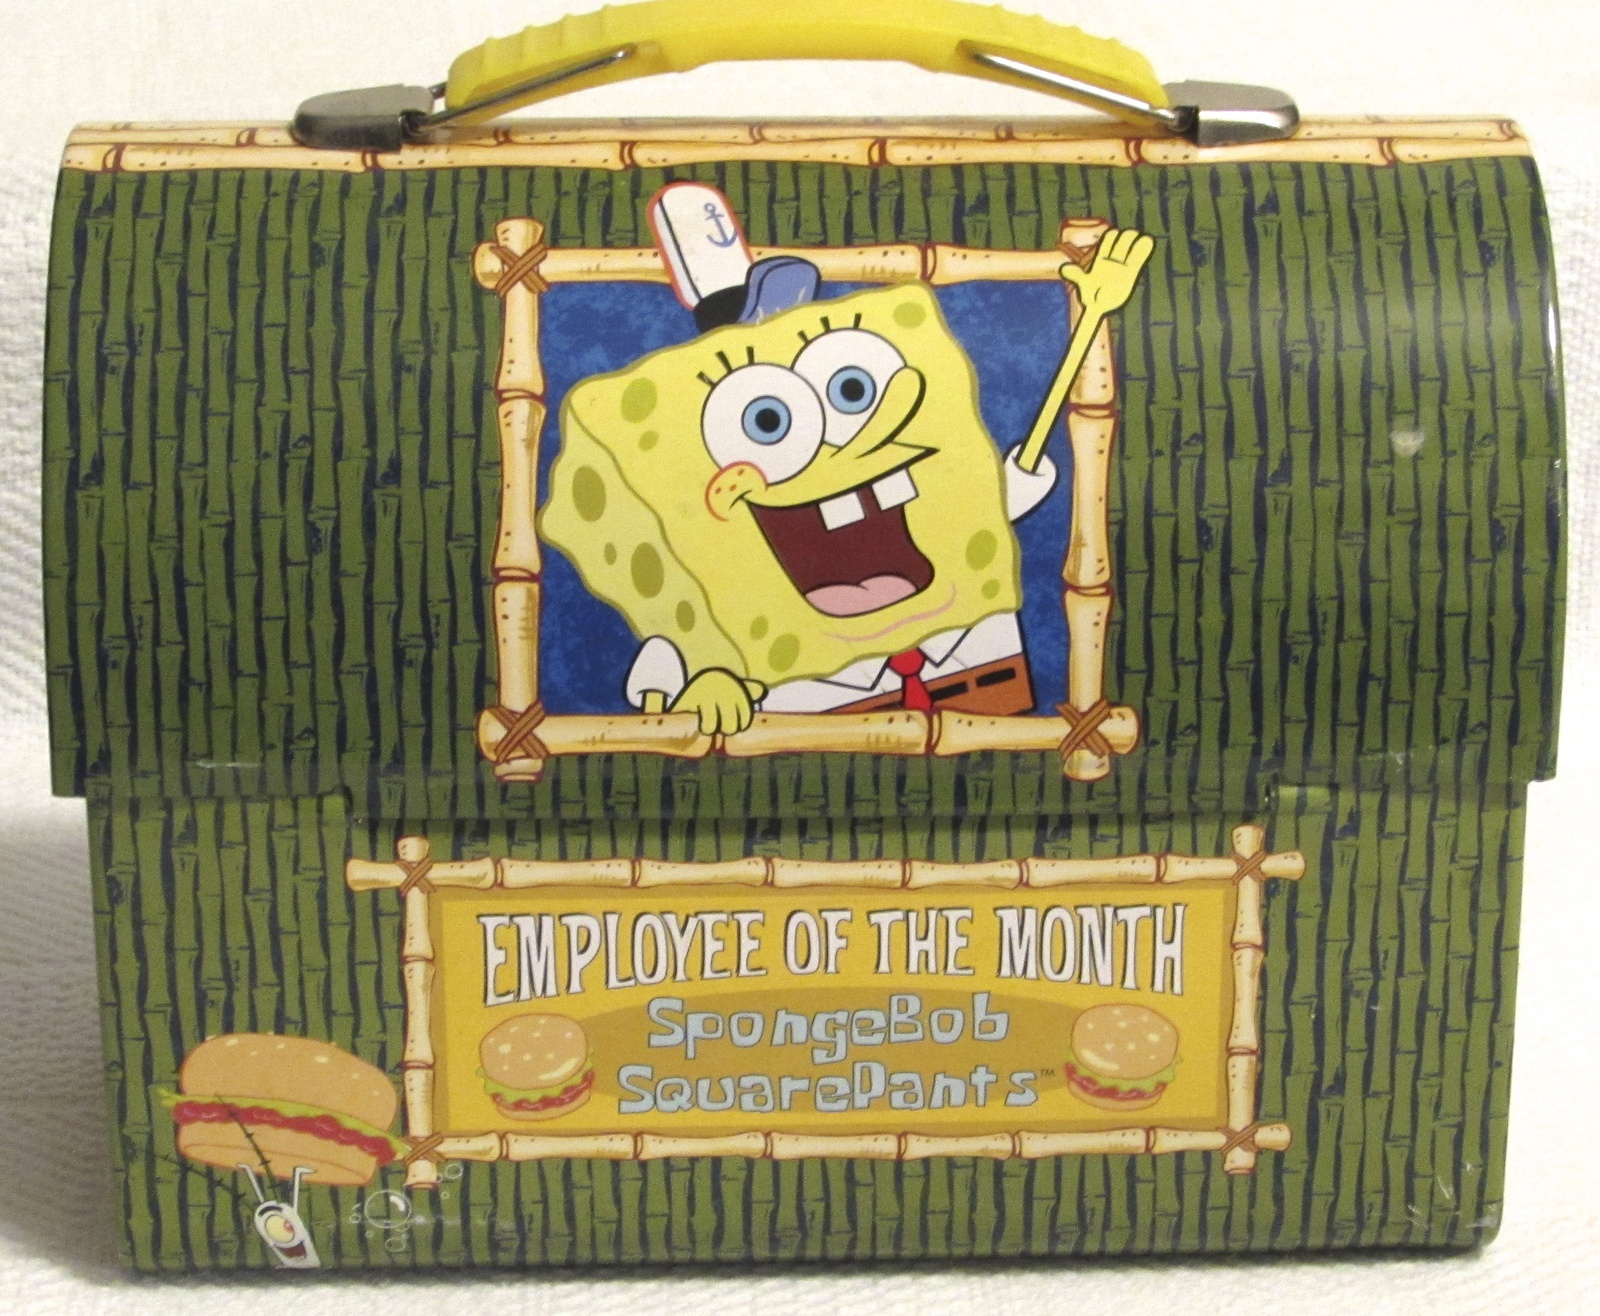 SpongeBob SquarePants Employee of the Month Metal Dome Lunch Box/Tin Box 2001